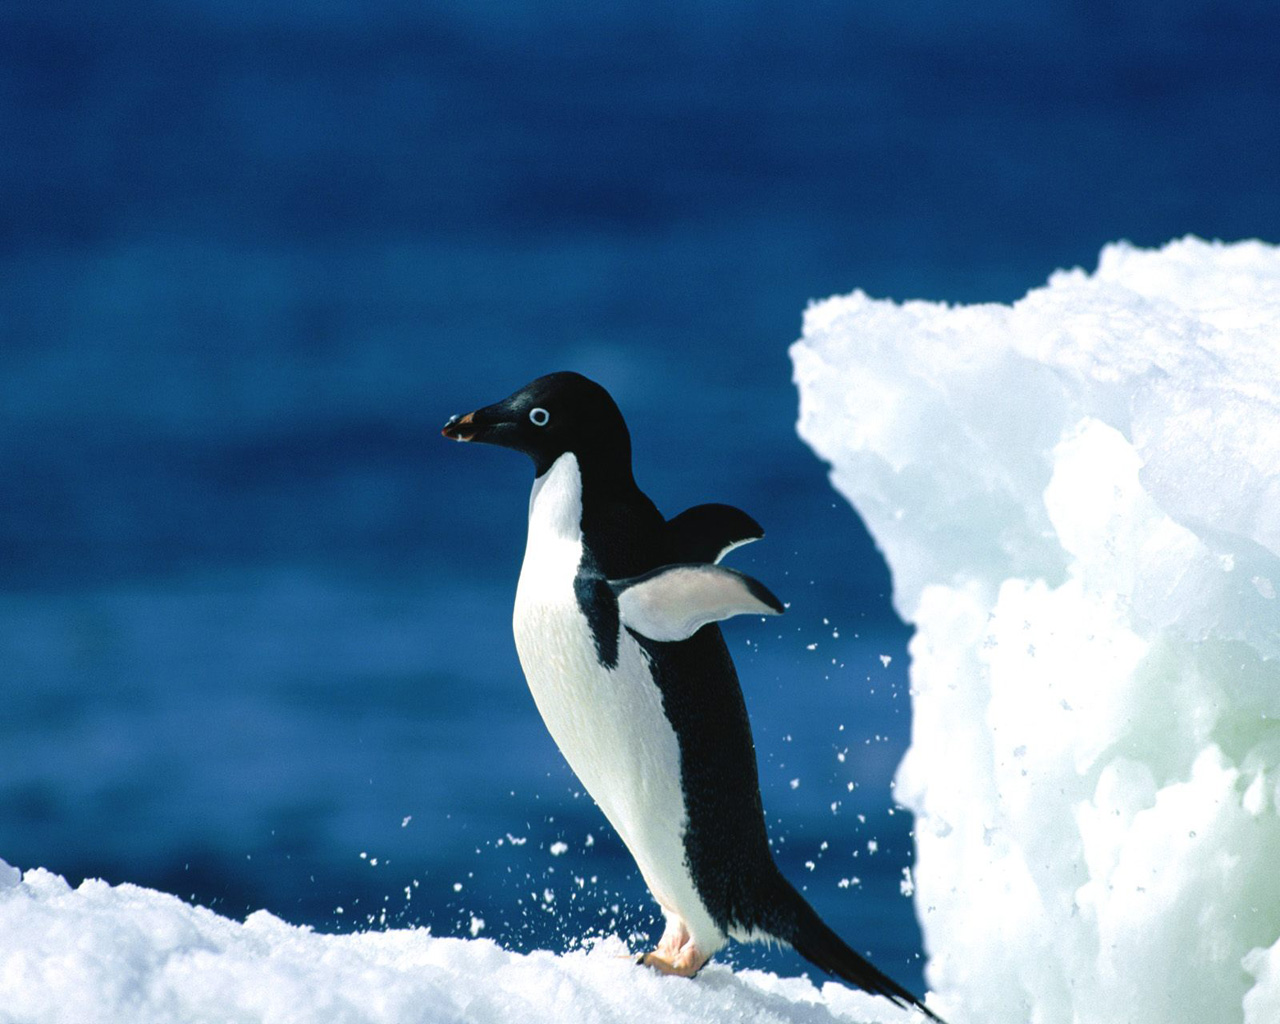 Animal Free Wallpapers Animal Penguin Free Wallpapers HD Wallpapers Download Free Images Wallpaper [1000image.com]